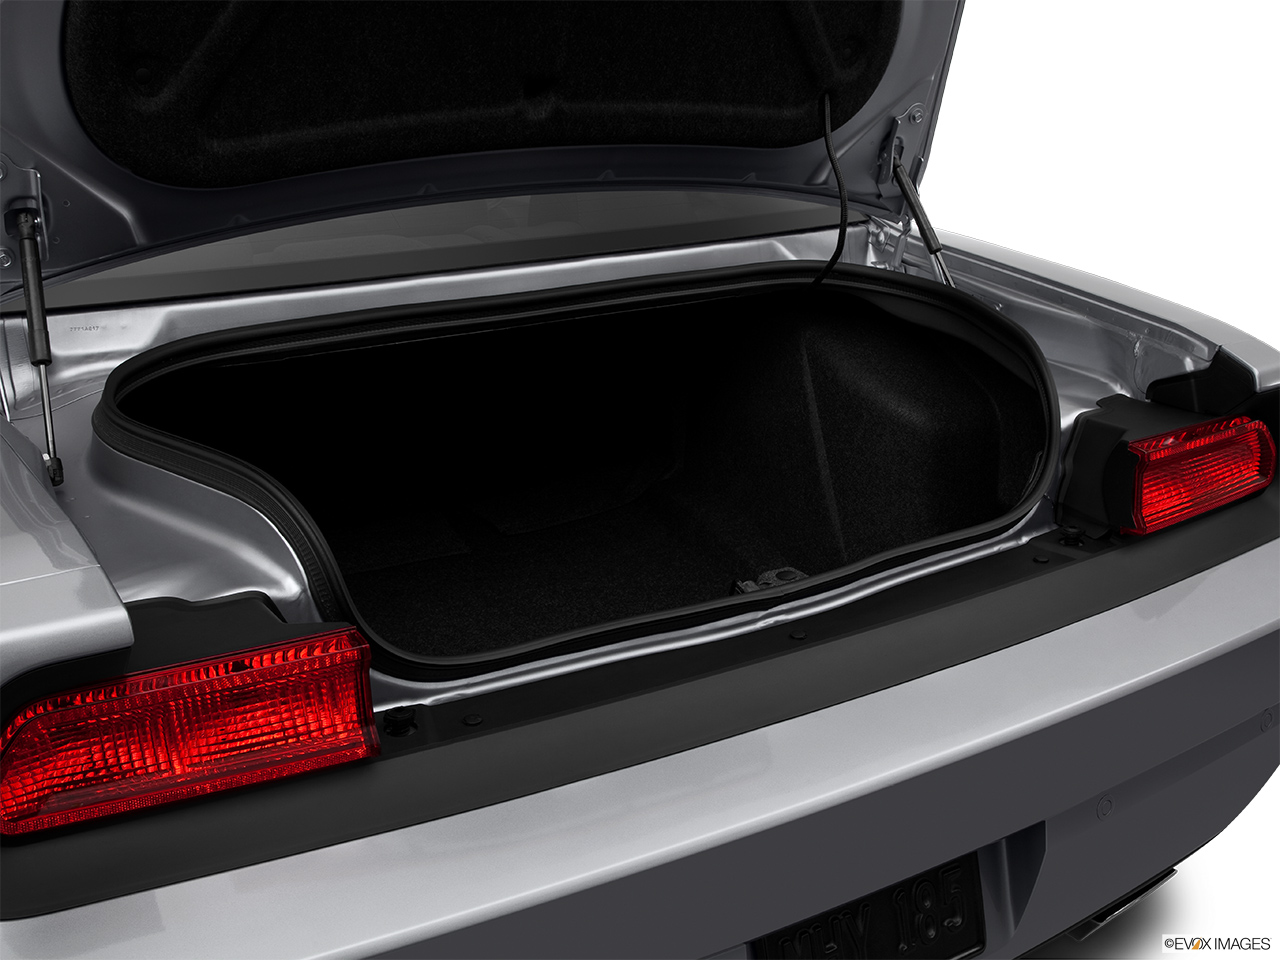 2015 Challenger >> 2015 Dodge Challenger SXT Coupe - Trunk open